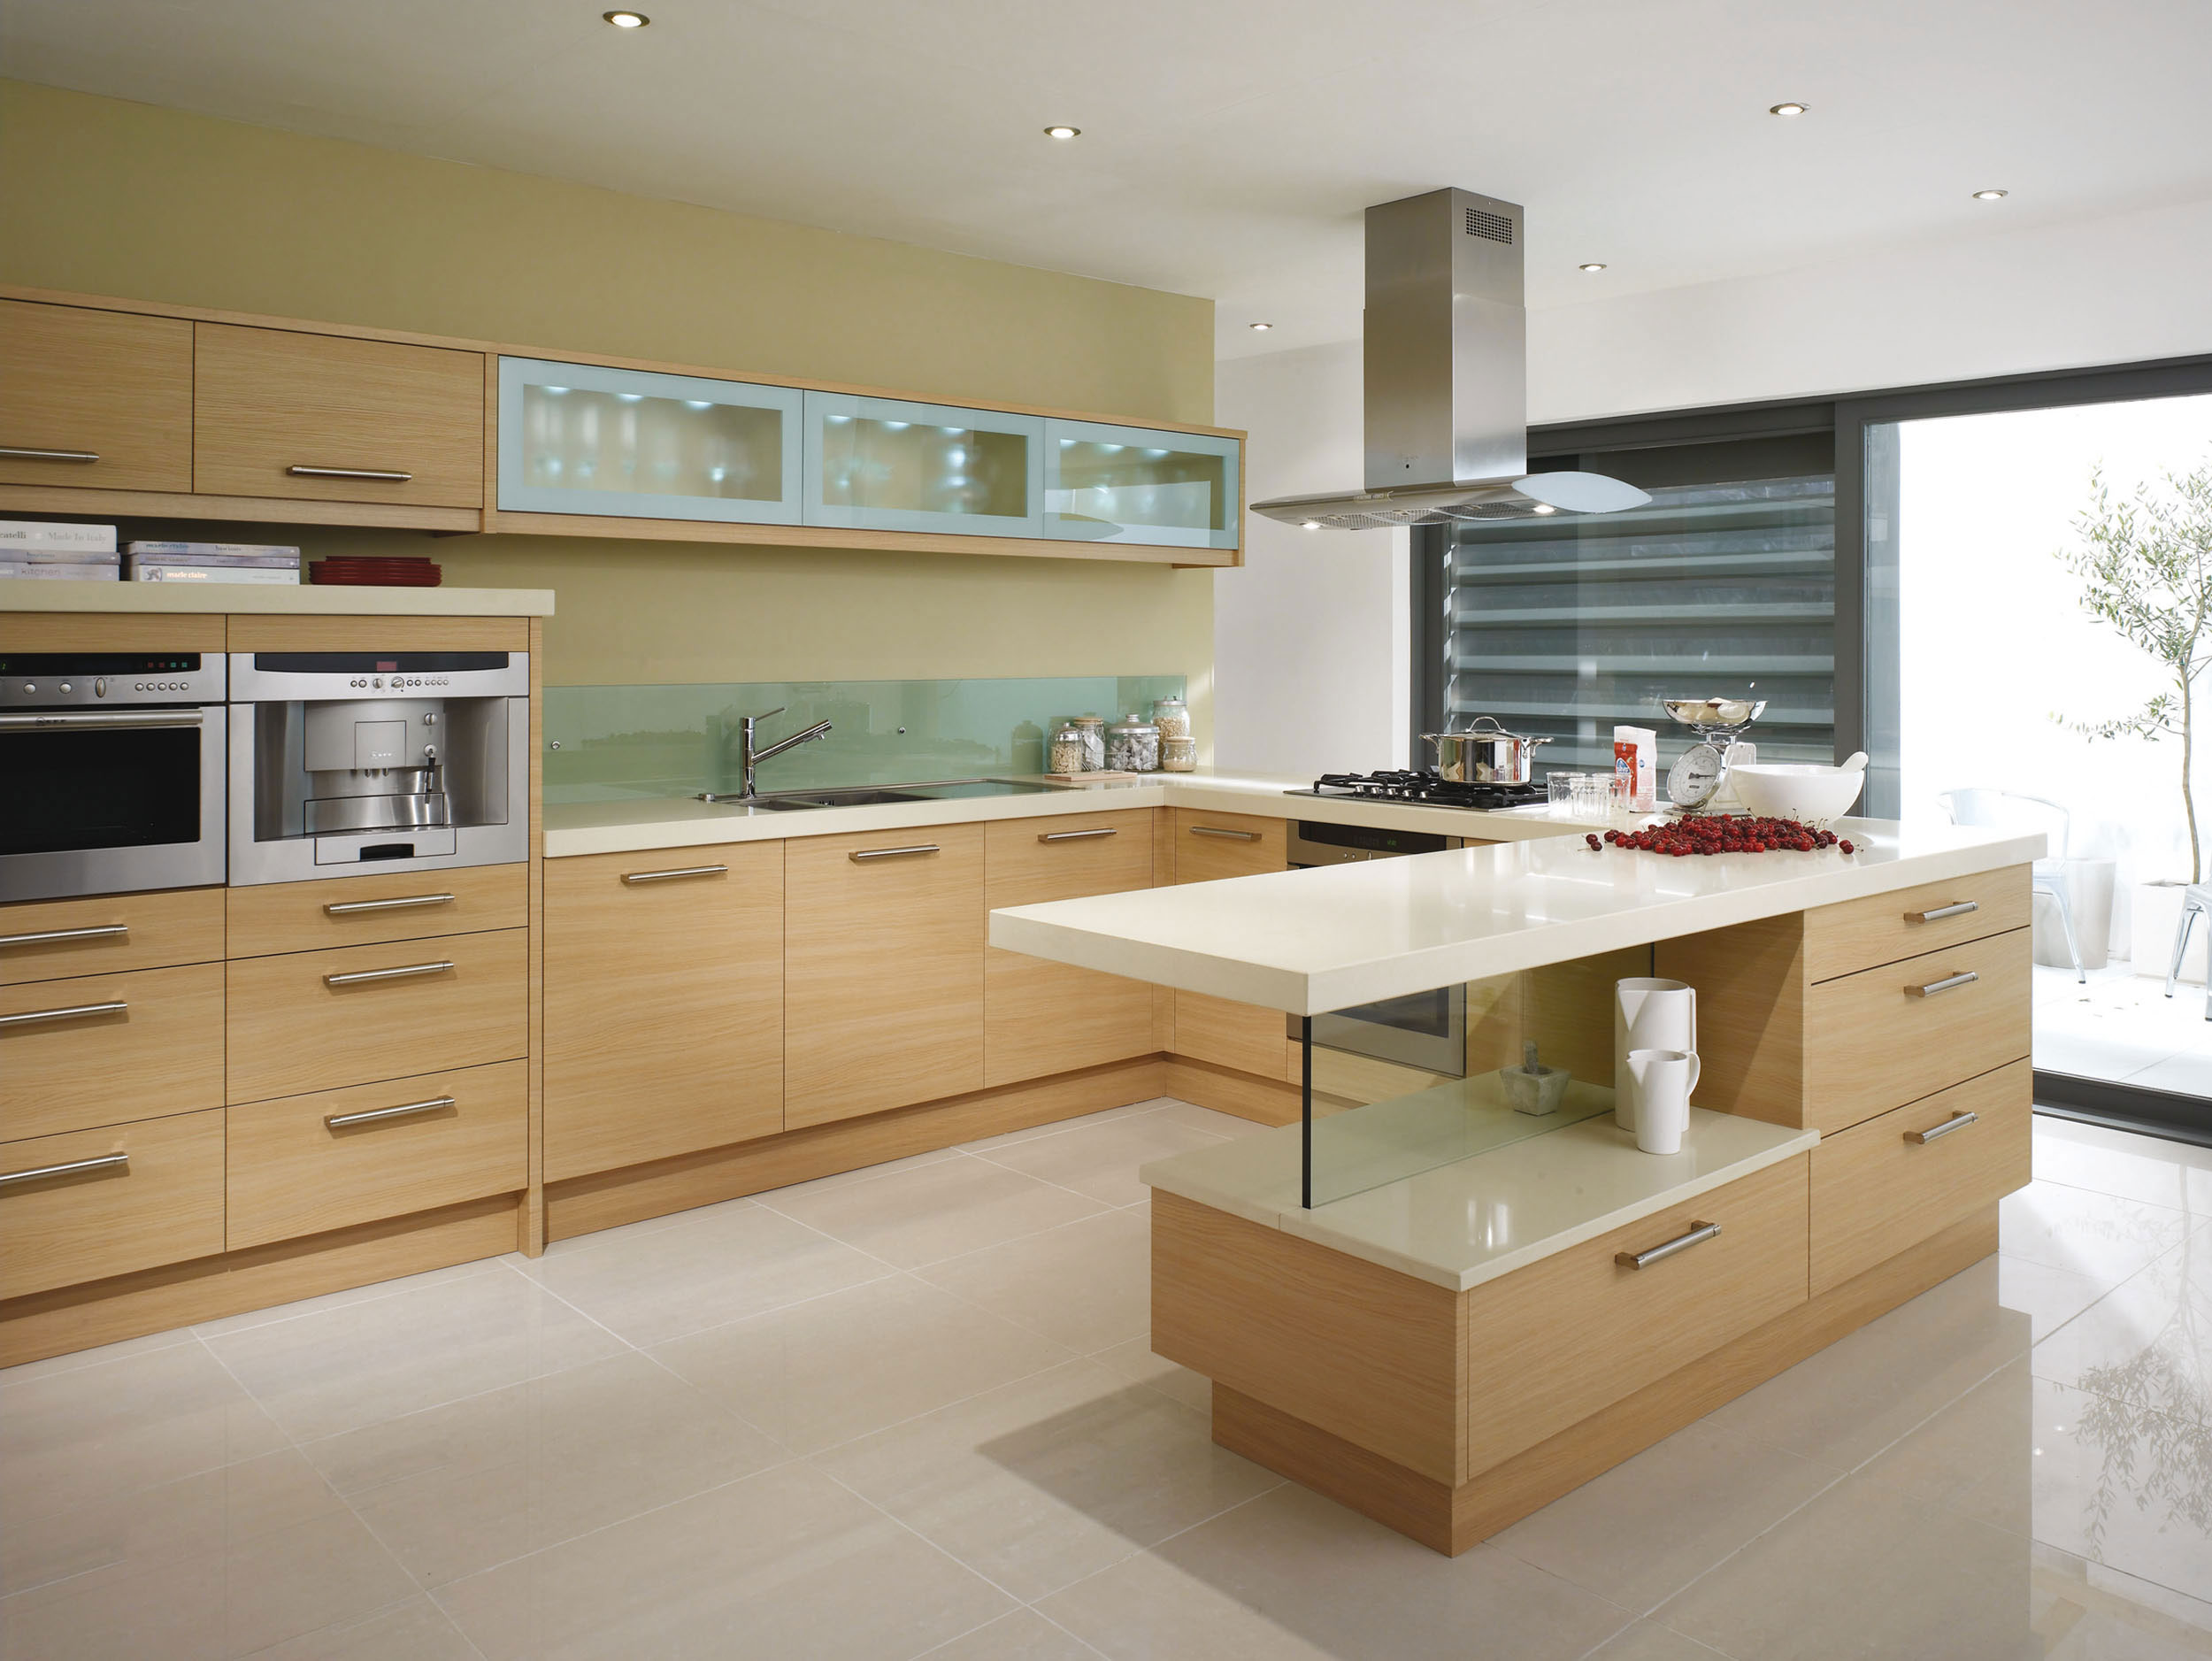 Fenton oak from eaton kitchen designs wolverhampton for Contemporary kitchen style